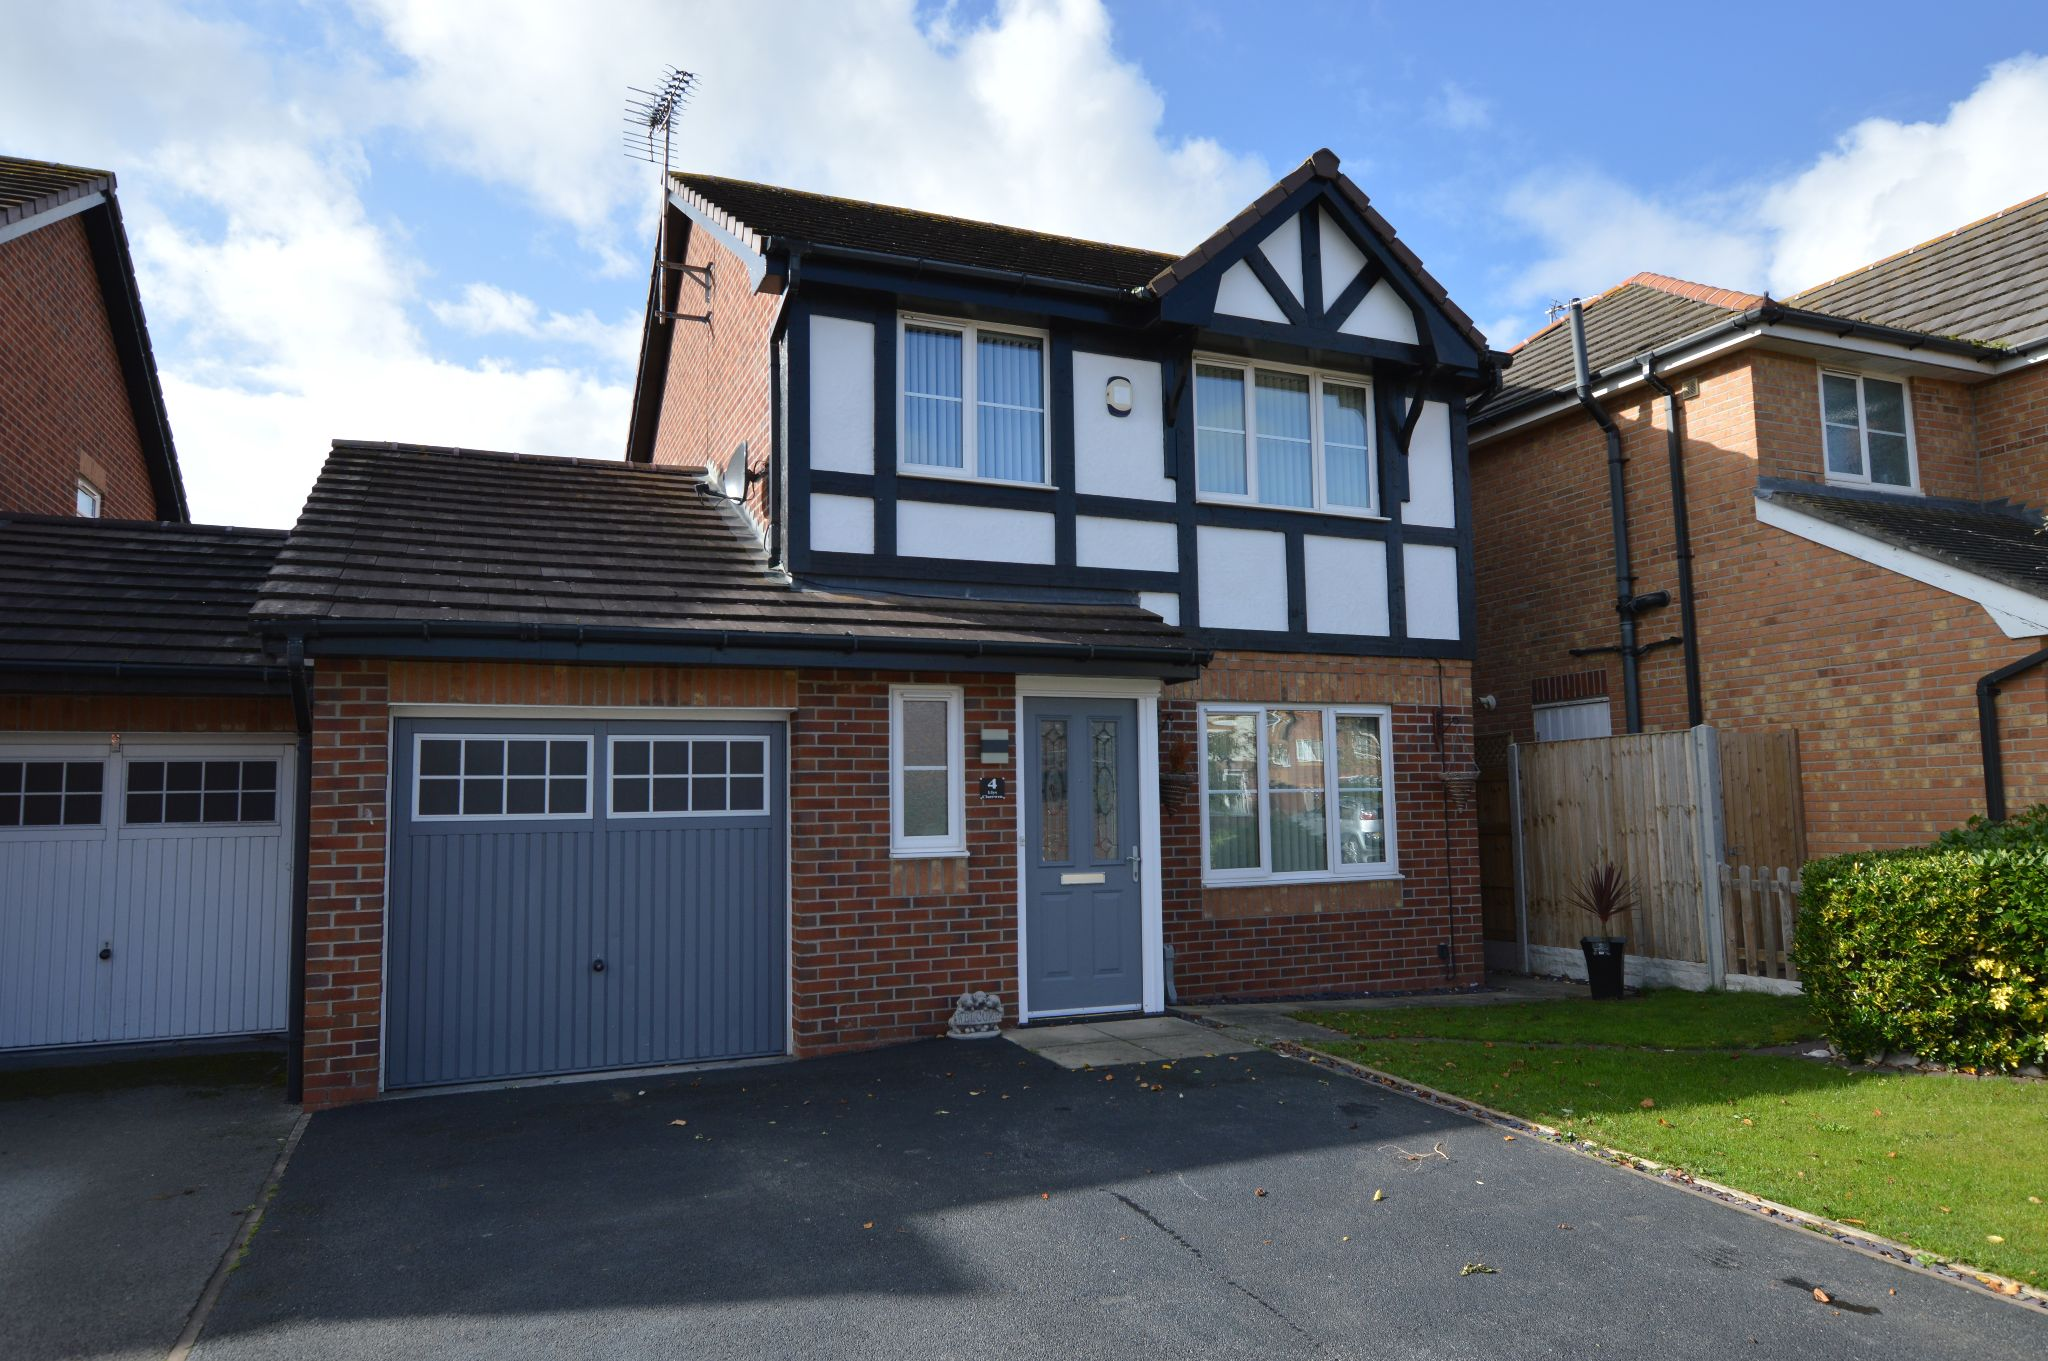 3 bedroom detached house For Sale in Rhyl - Front Aspect